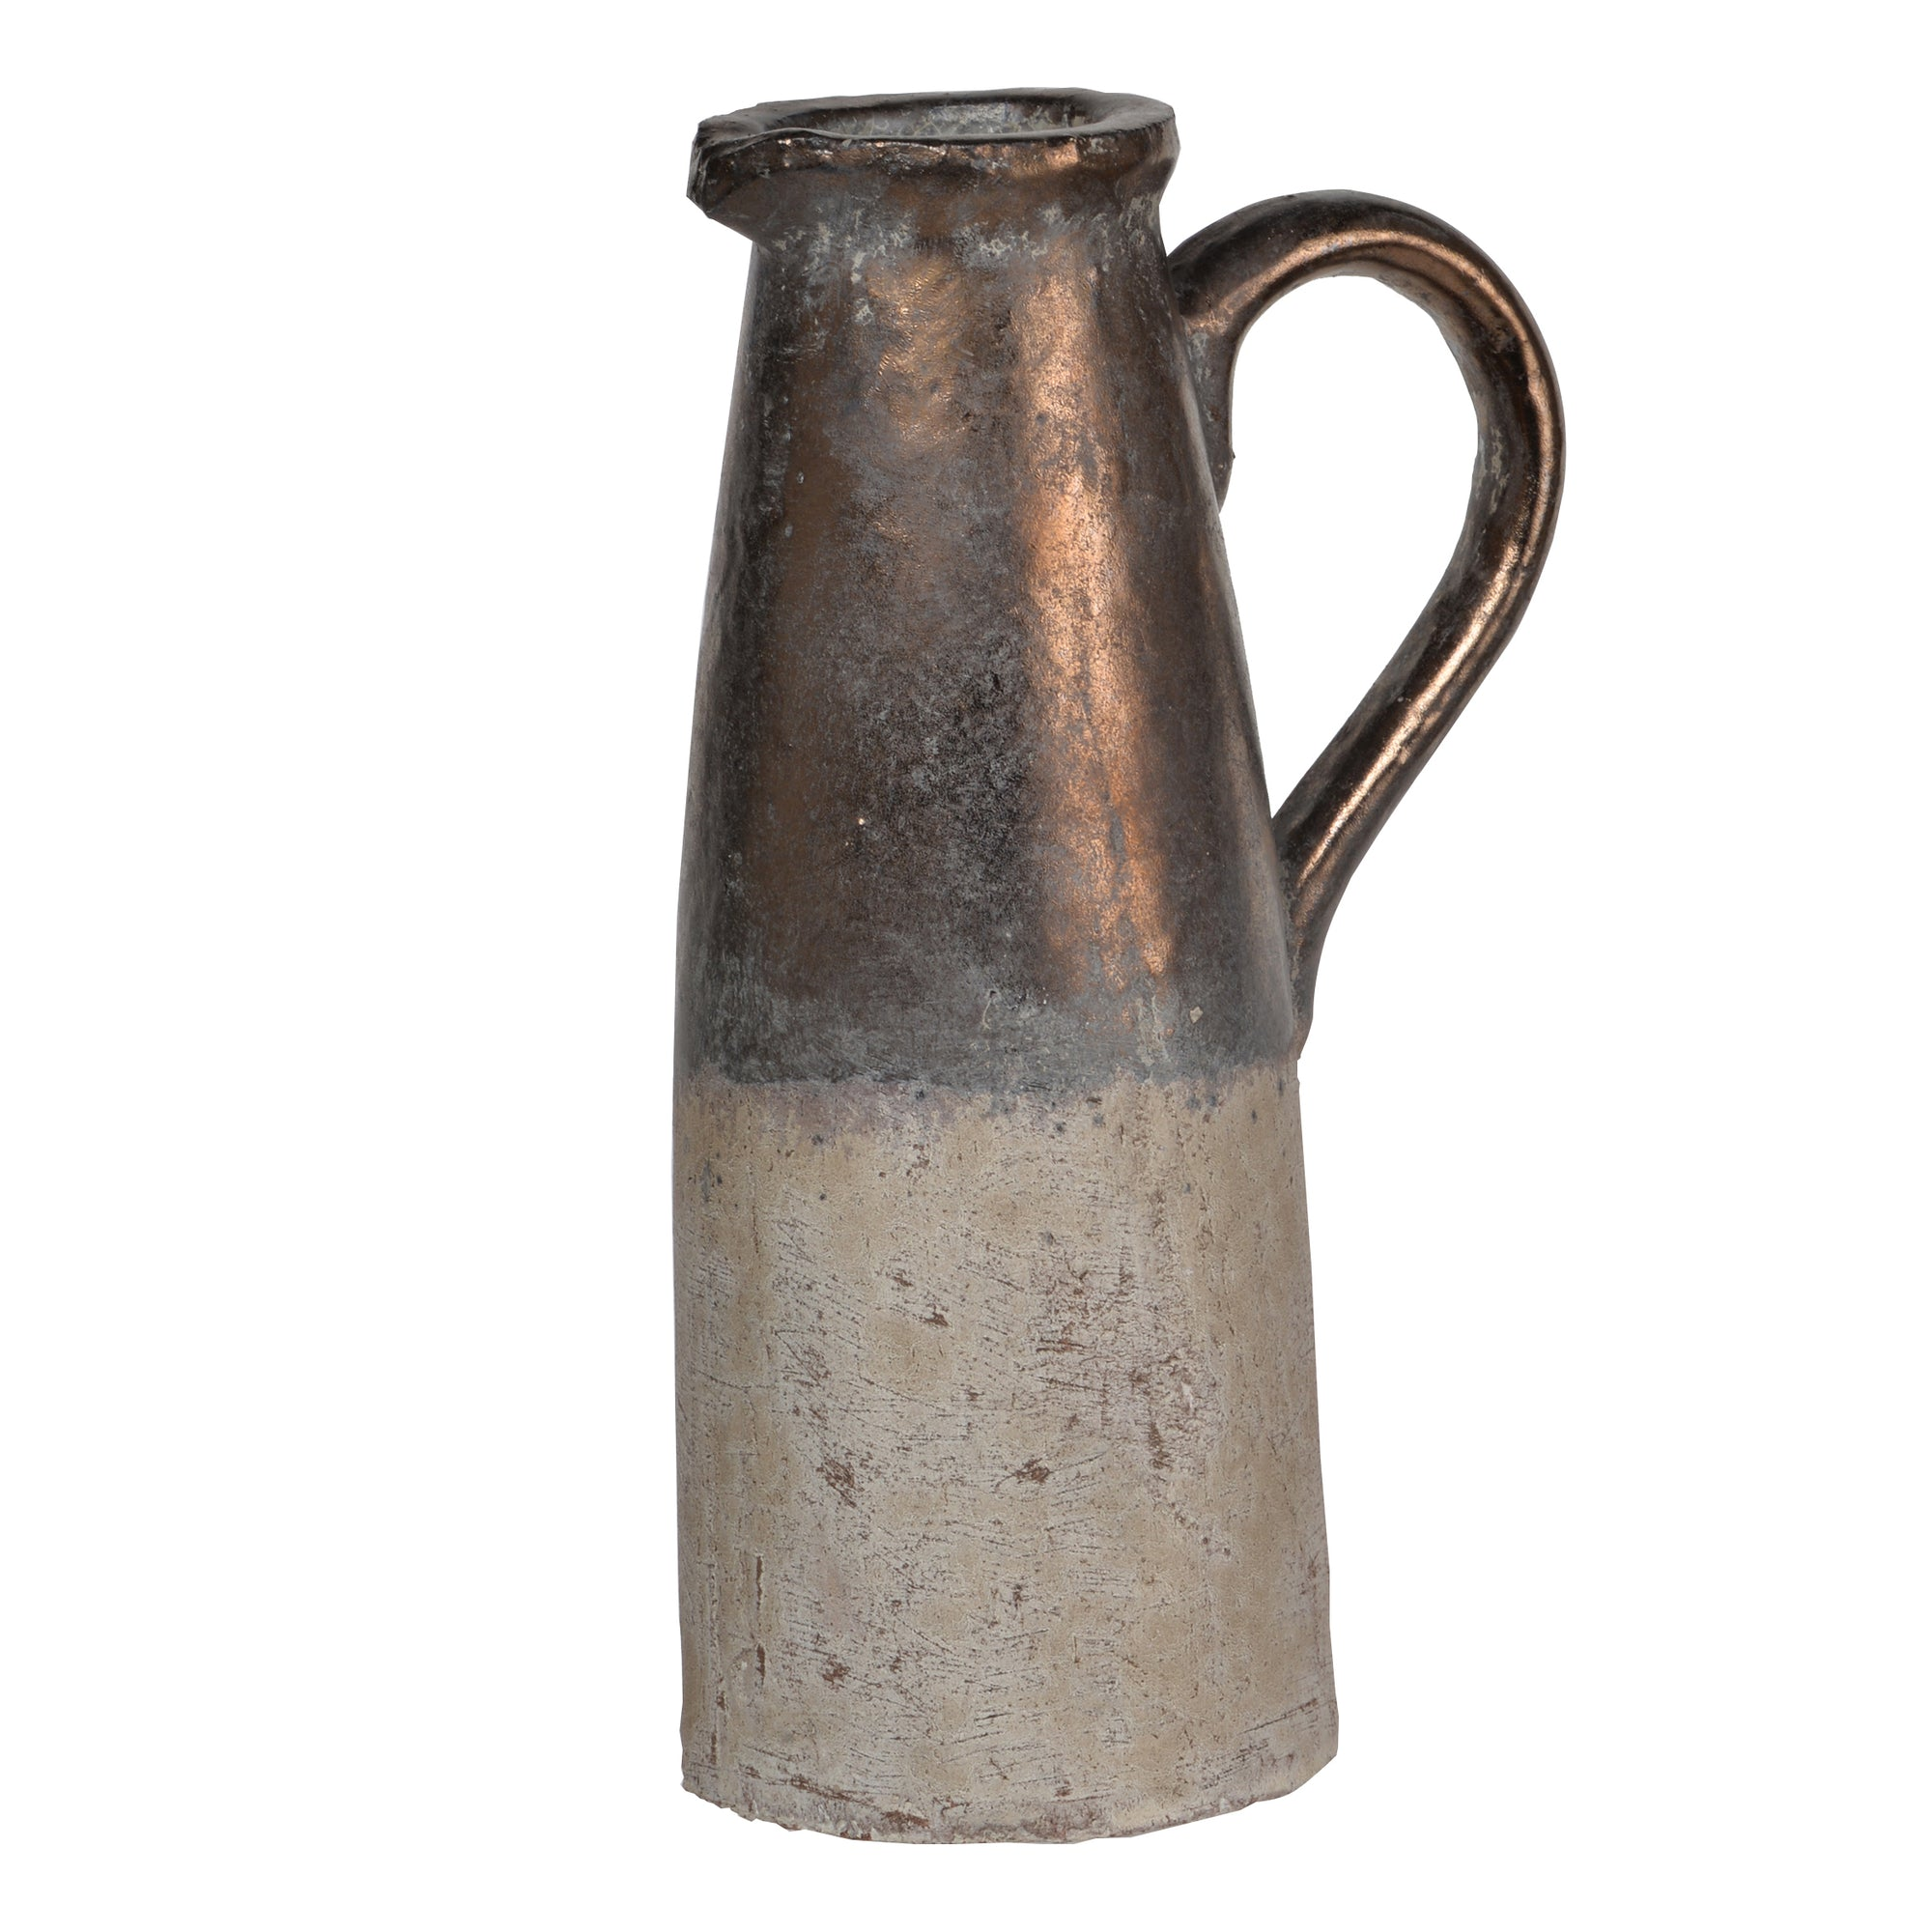 AB-1346 Candia Ceramic Pitcher, Sienna Brown